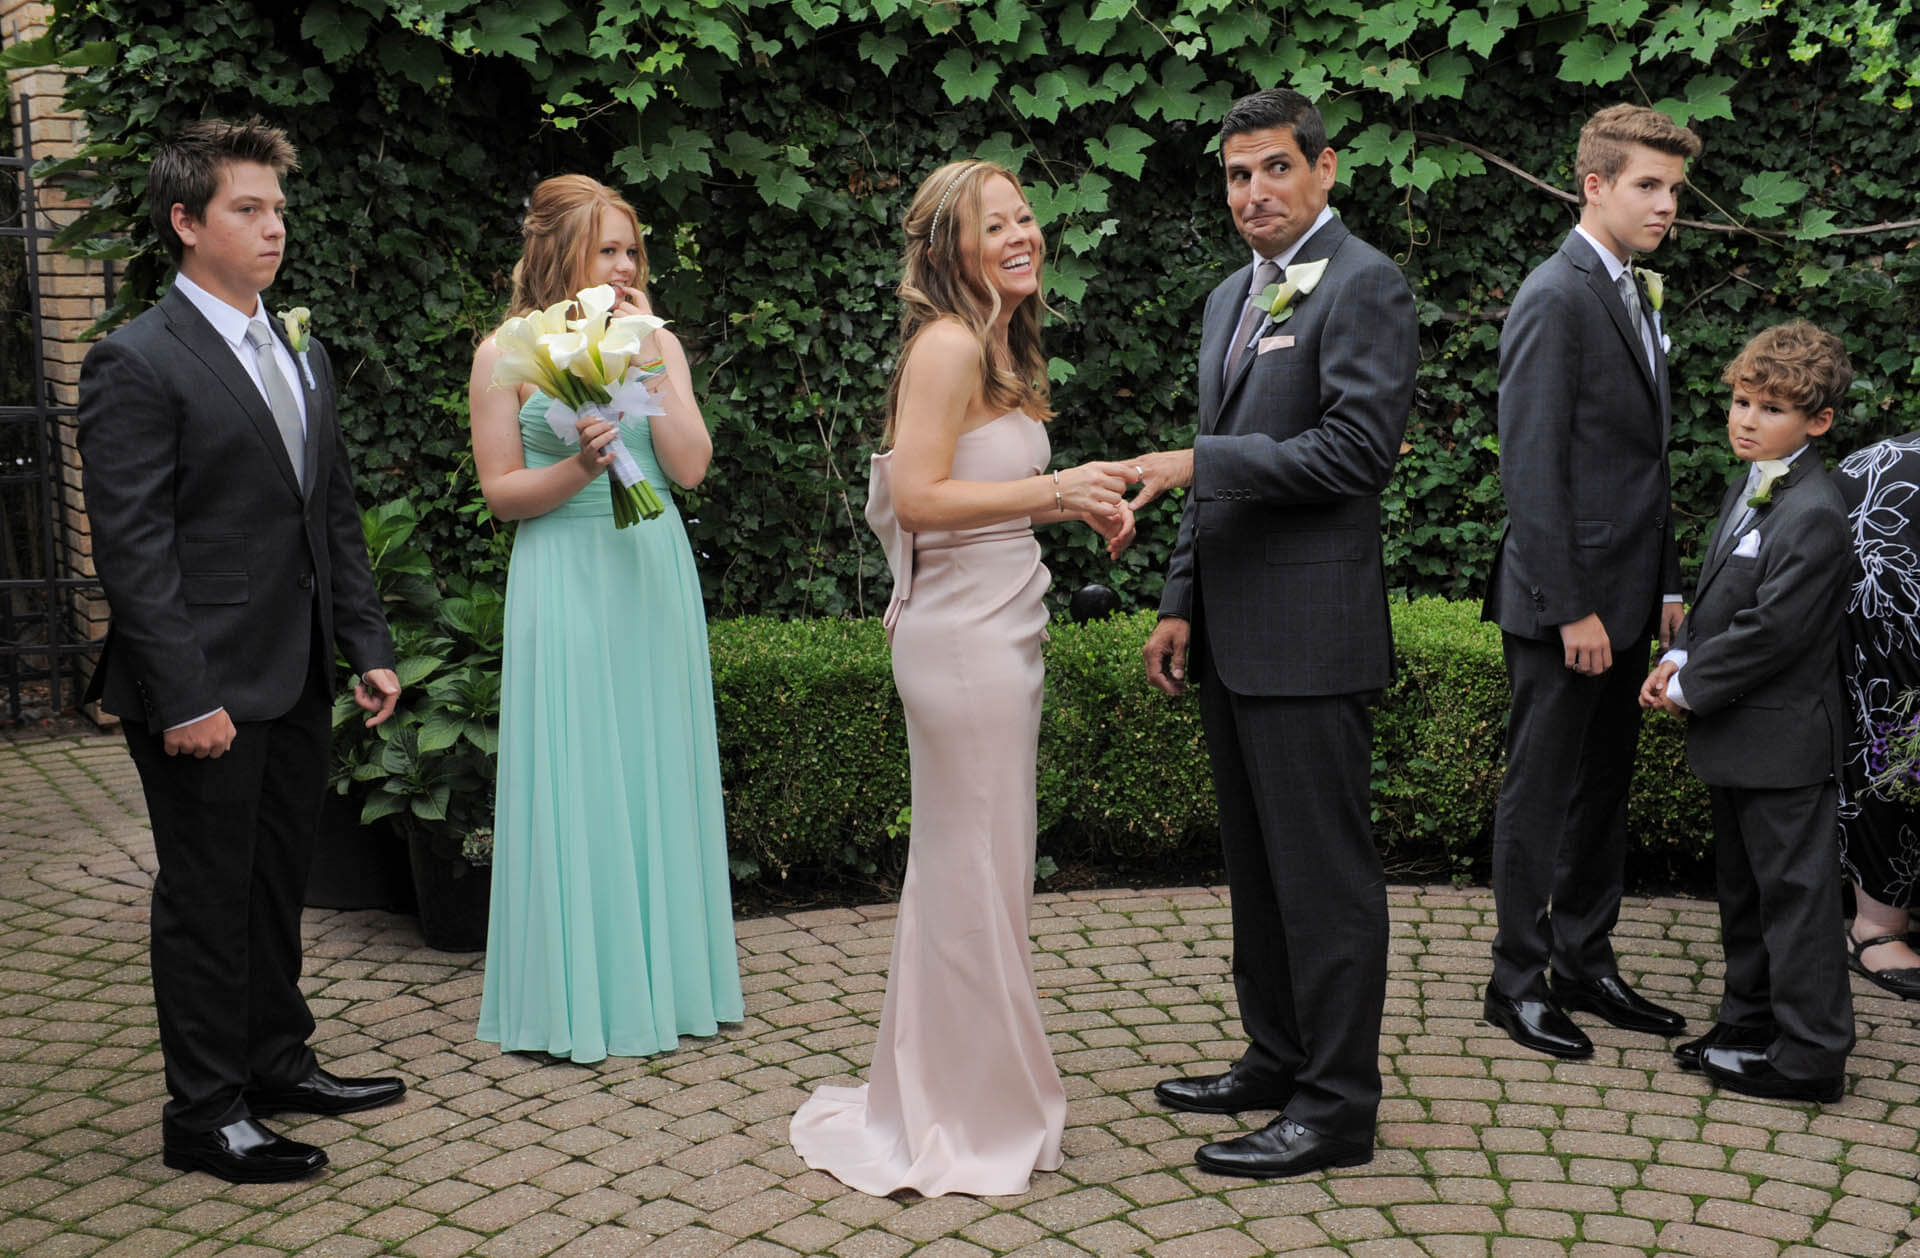 The groom says something wrong during his vows at his intimate family wedding at Cafe Cortina in Farmington Hills, Michigan.